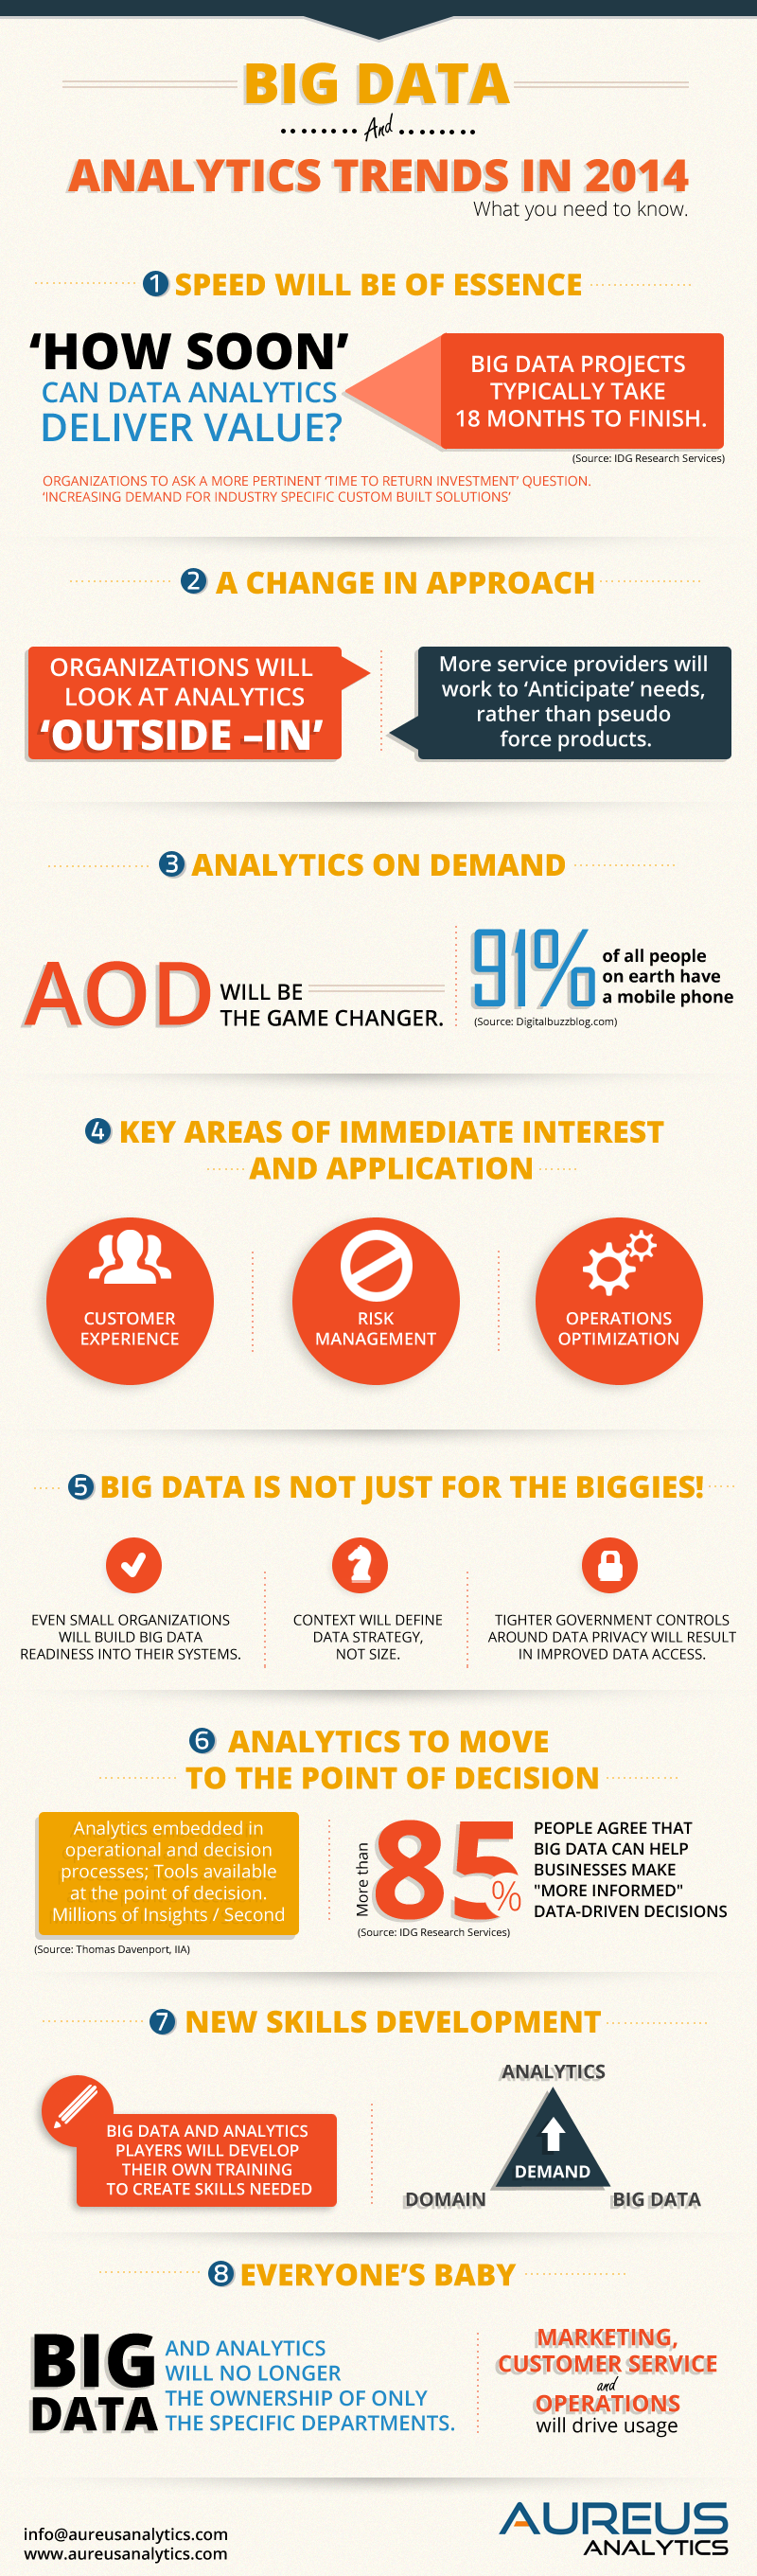 Big Data Analytic Trends for 2014